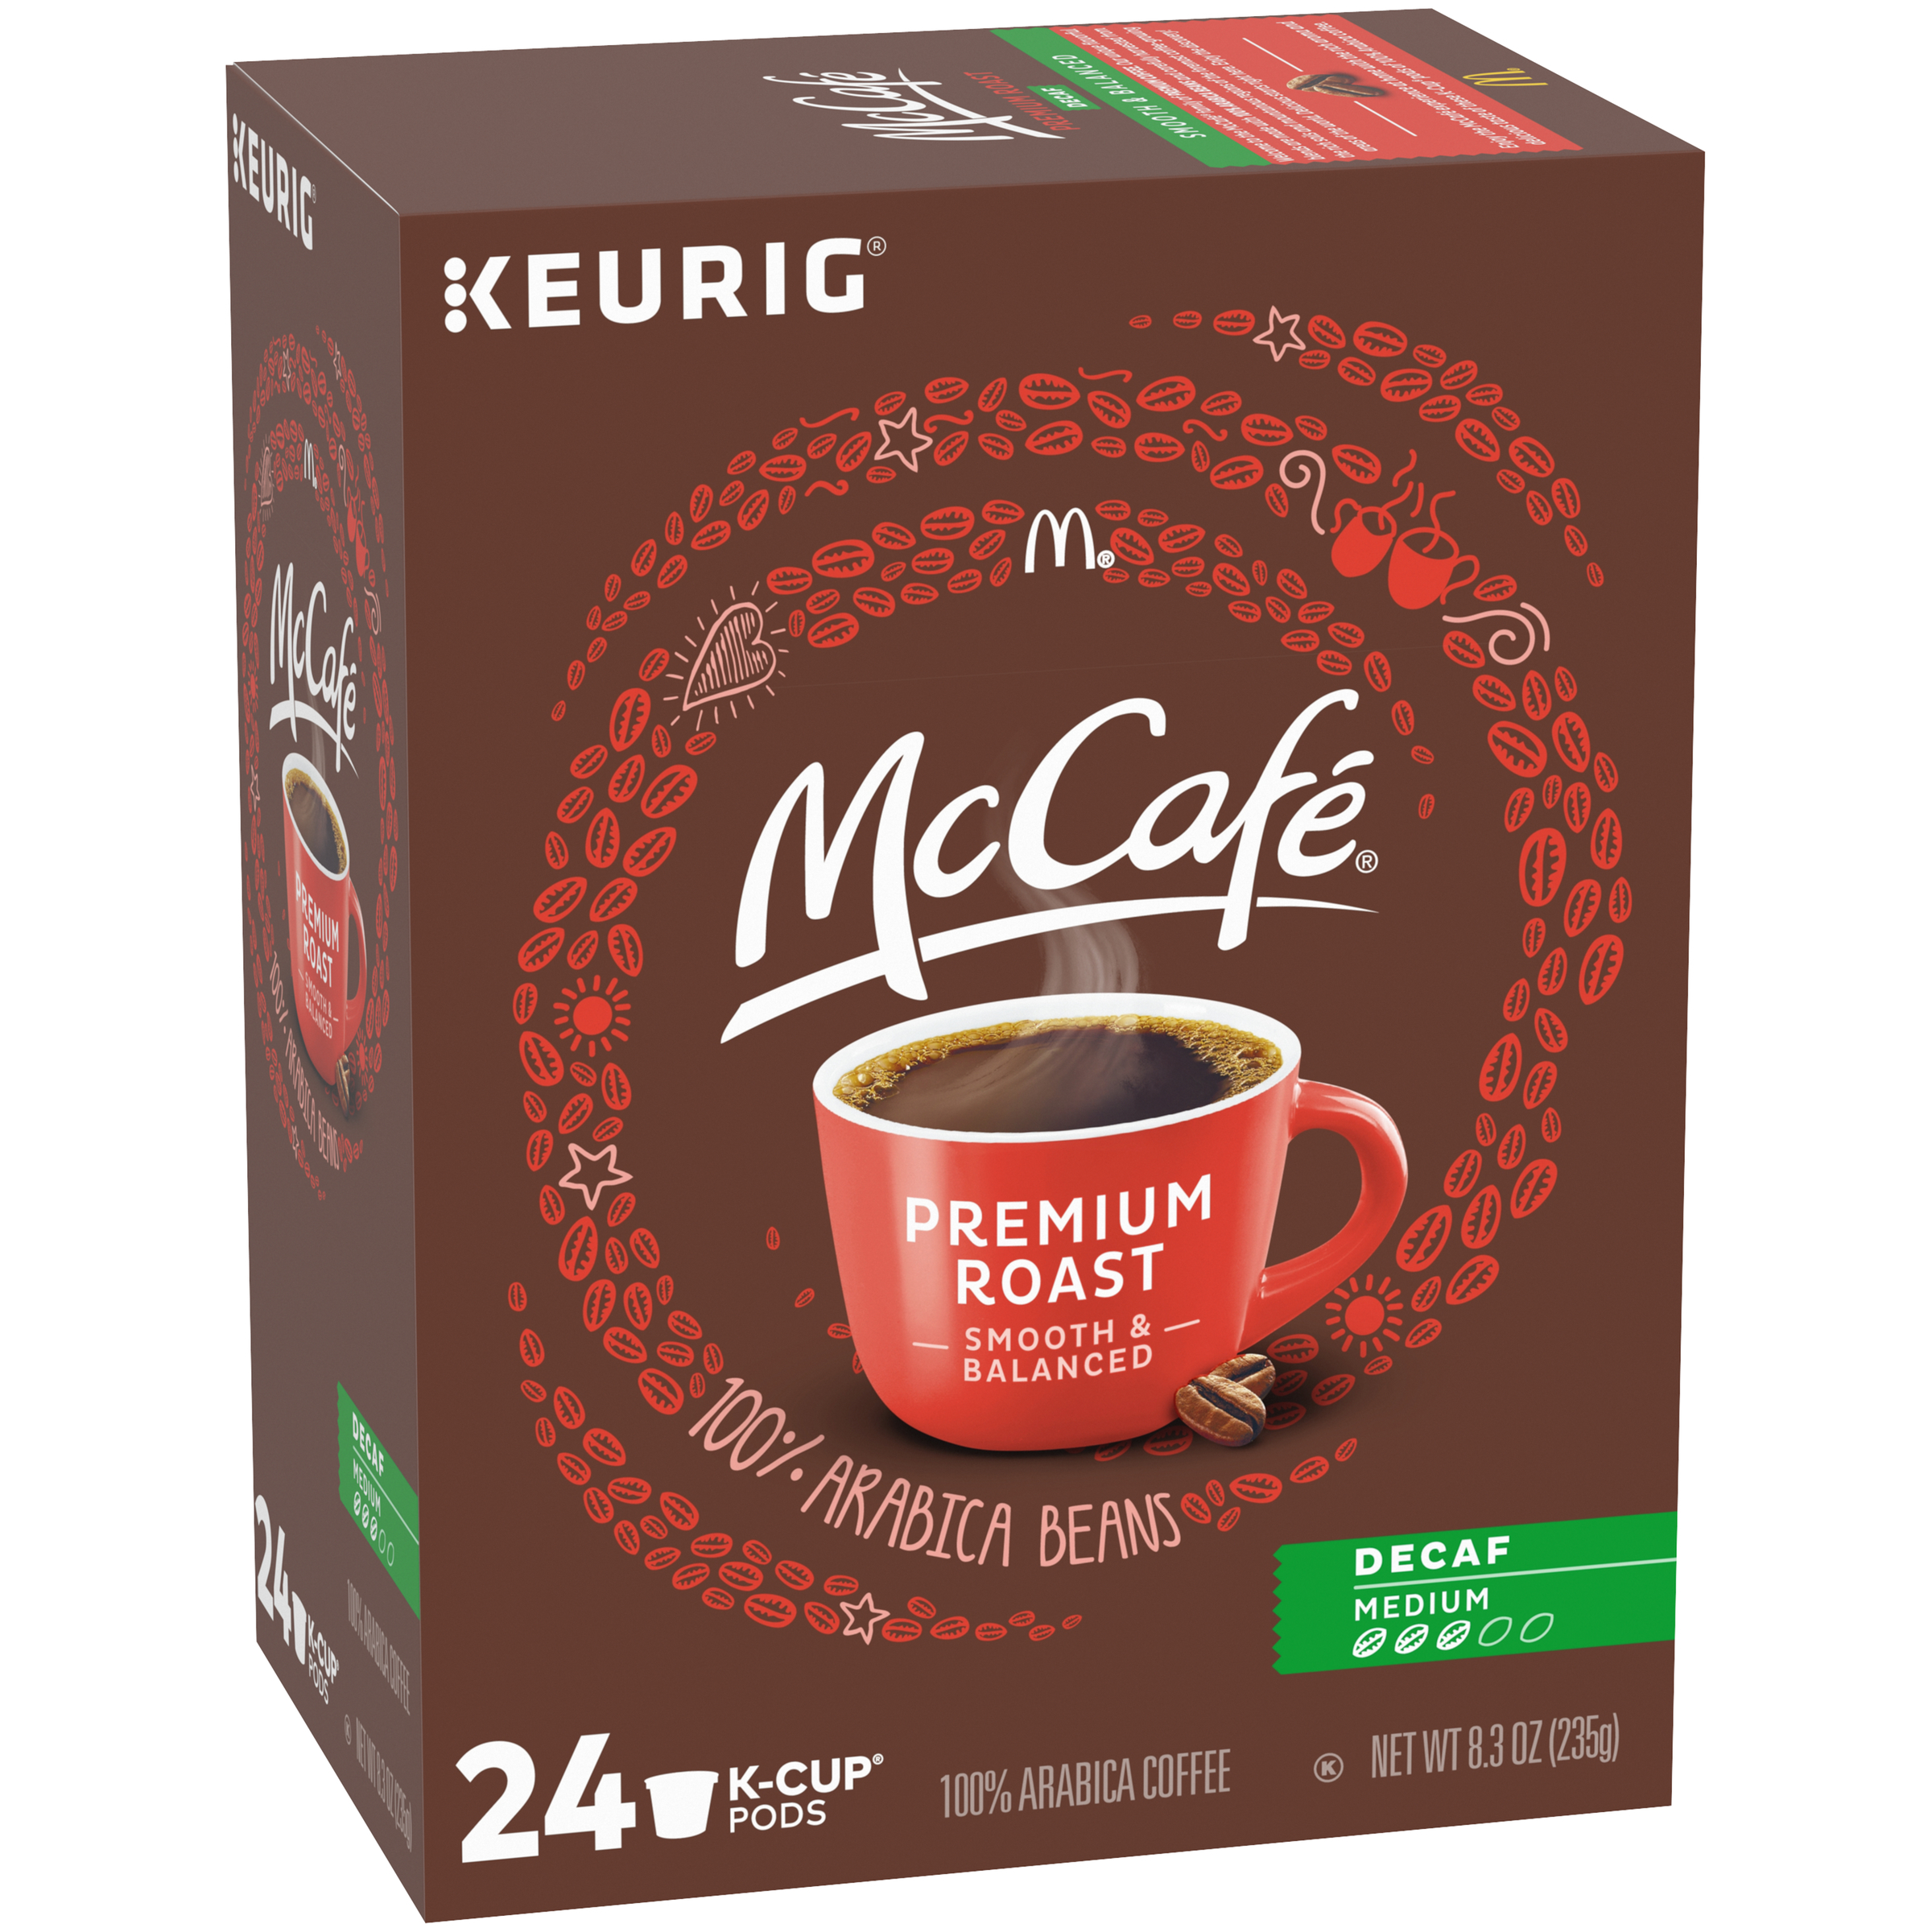 McCafé Decaf Medium Premium Roast Coffee K-Cup Pods, 24 count